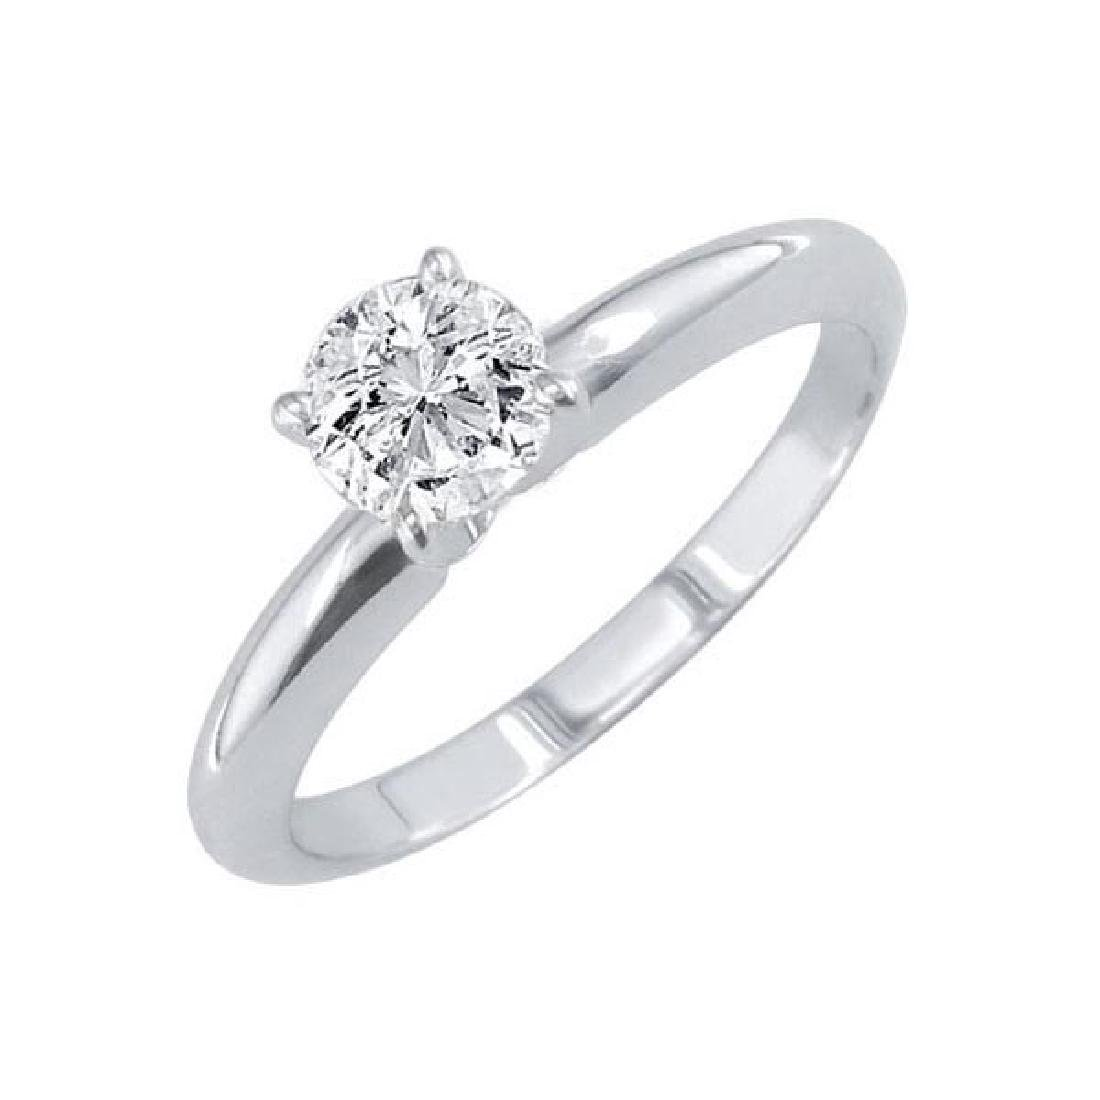 Certified 0.6 CTW Round Diamond Solitaire 14k Ring D/SI